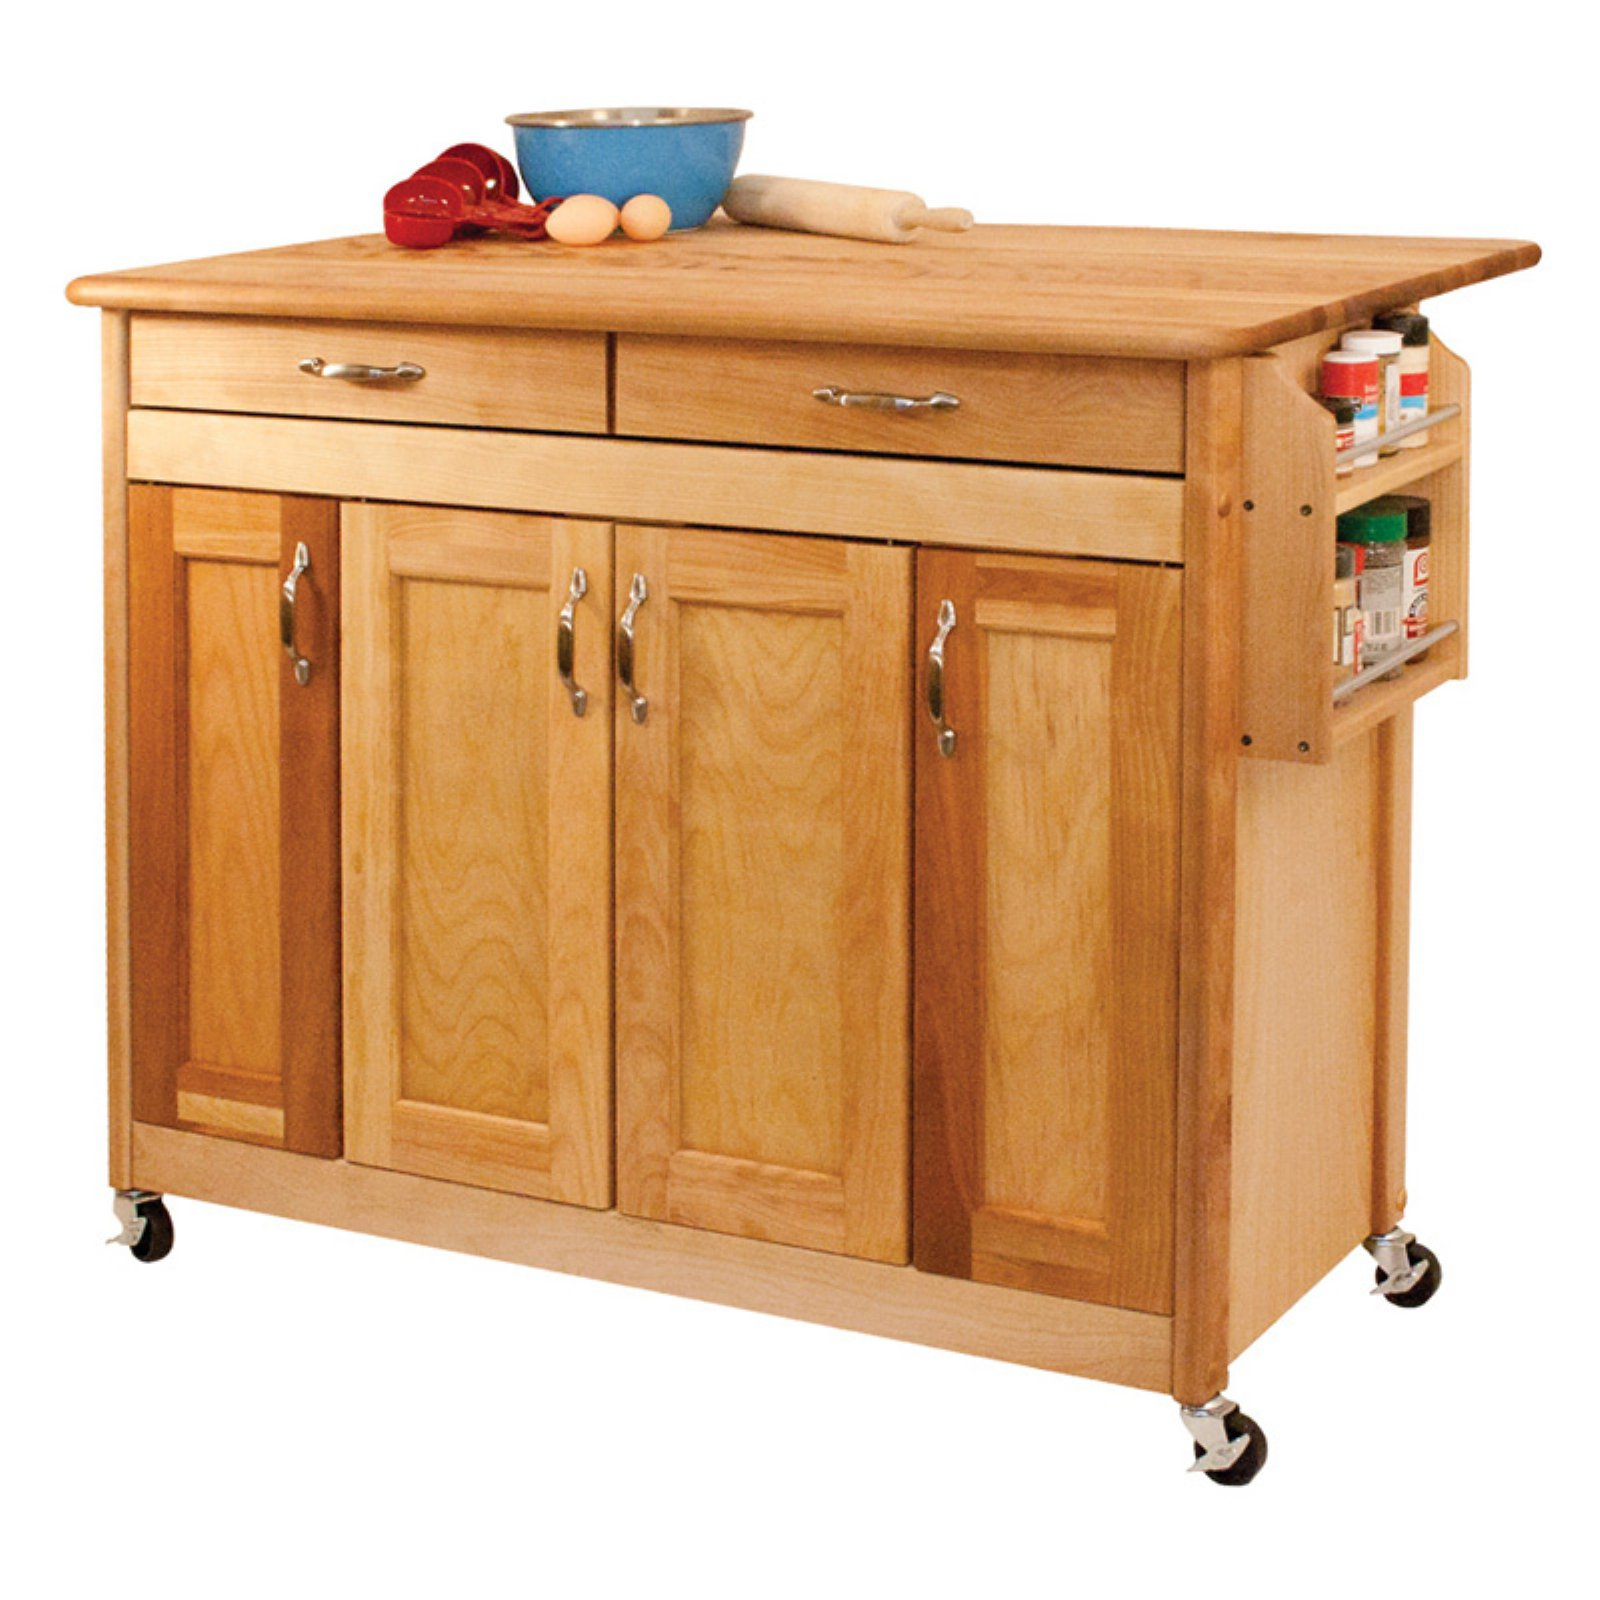 Catskill Craftsman Butcher Block Island with Panel Doors and Drop Leaf Portable Kitchen... by Catskill Craftsmen